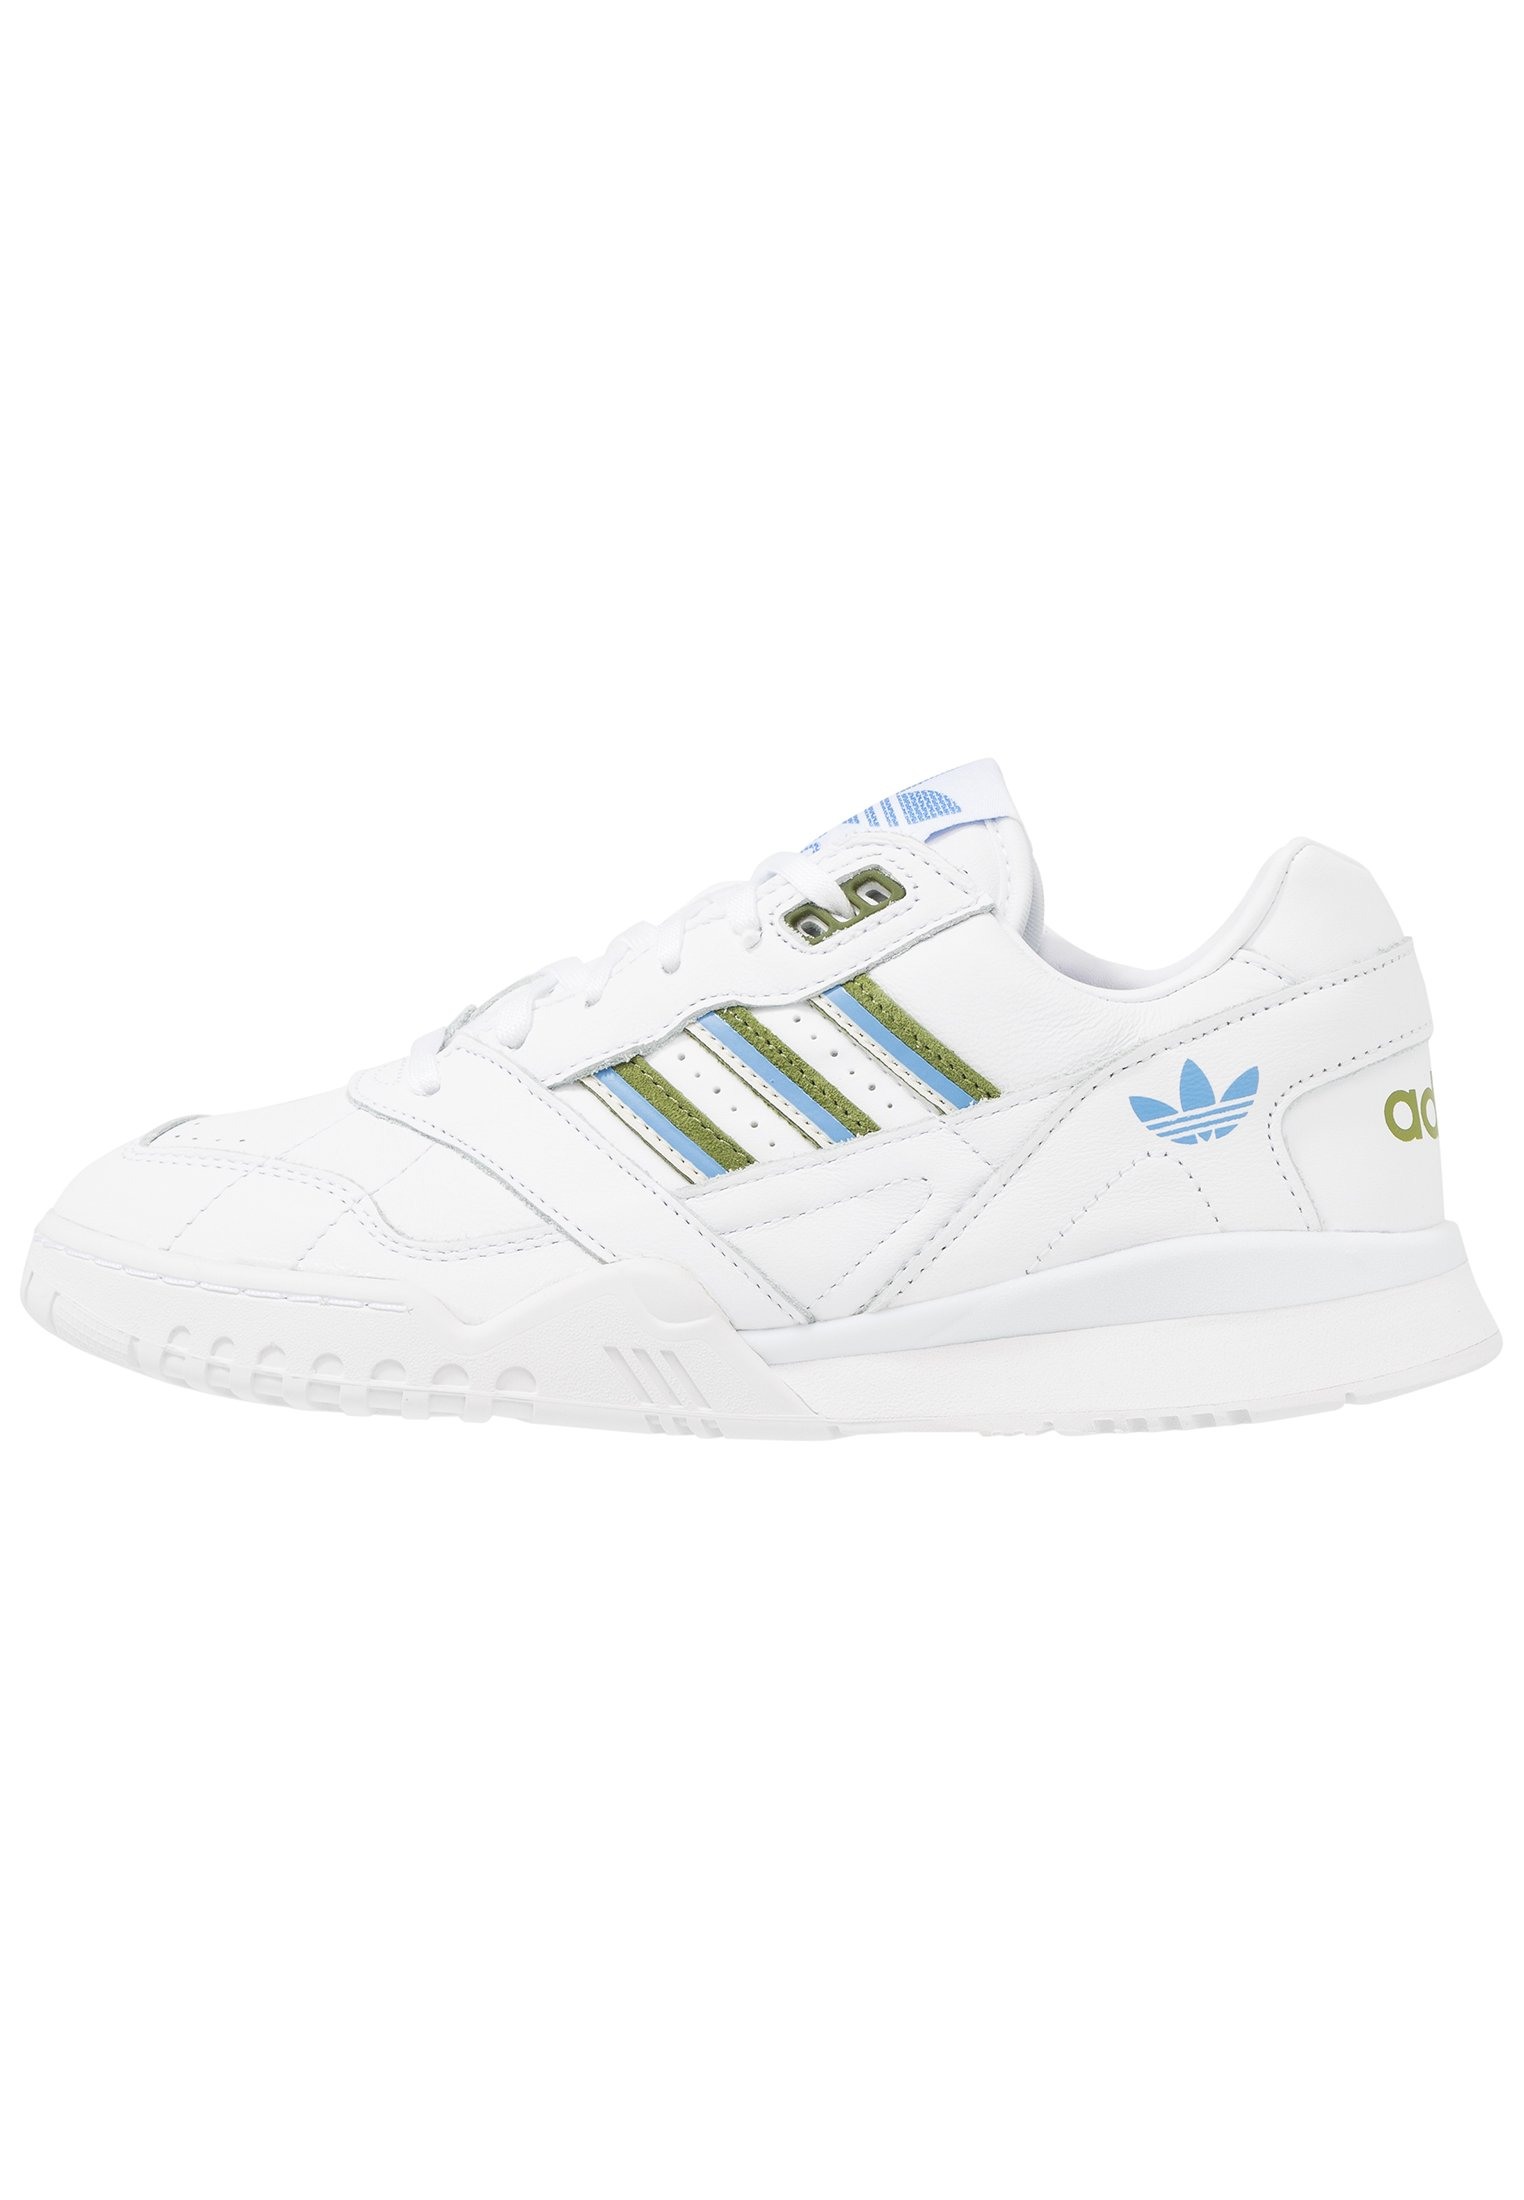 A.R. TRAINER Sneaker low footwear whitetech olivereal blue